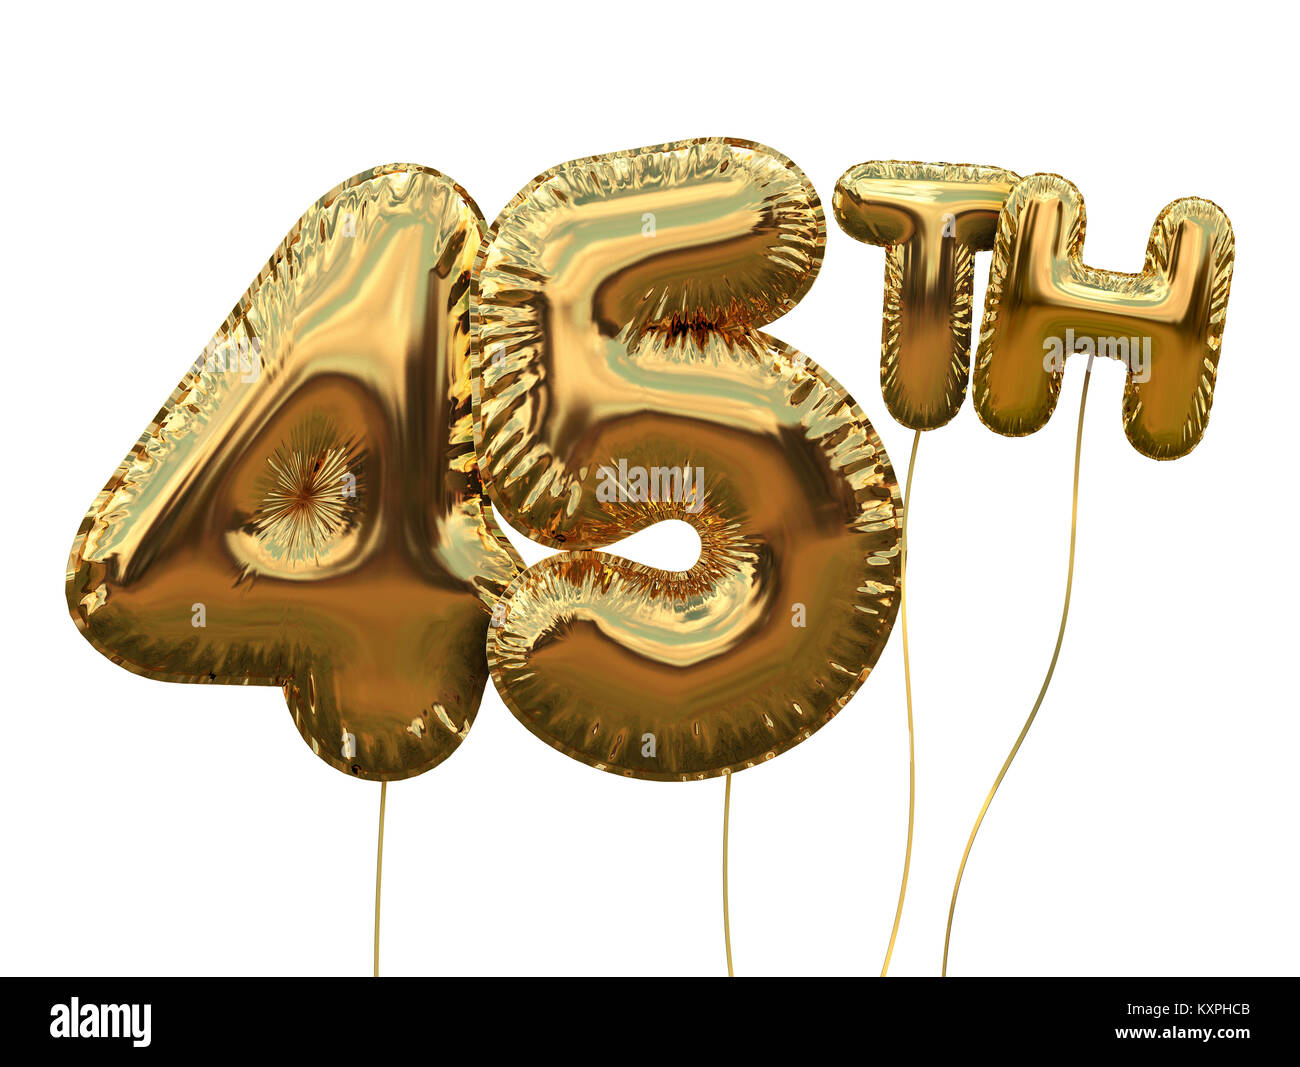 Gold Number 45 Foil Birthday Balloon Isolated On White Golden Party Celebration 3D Rendering